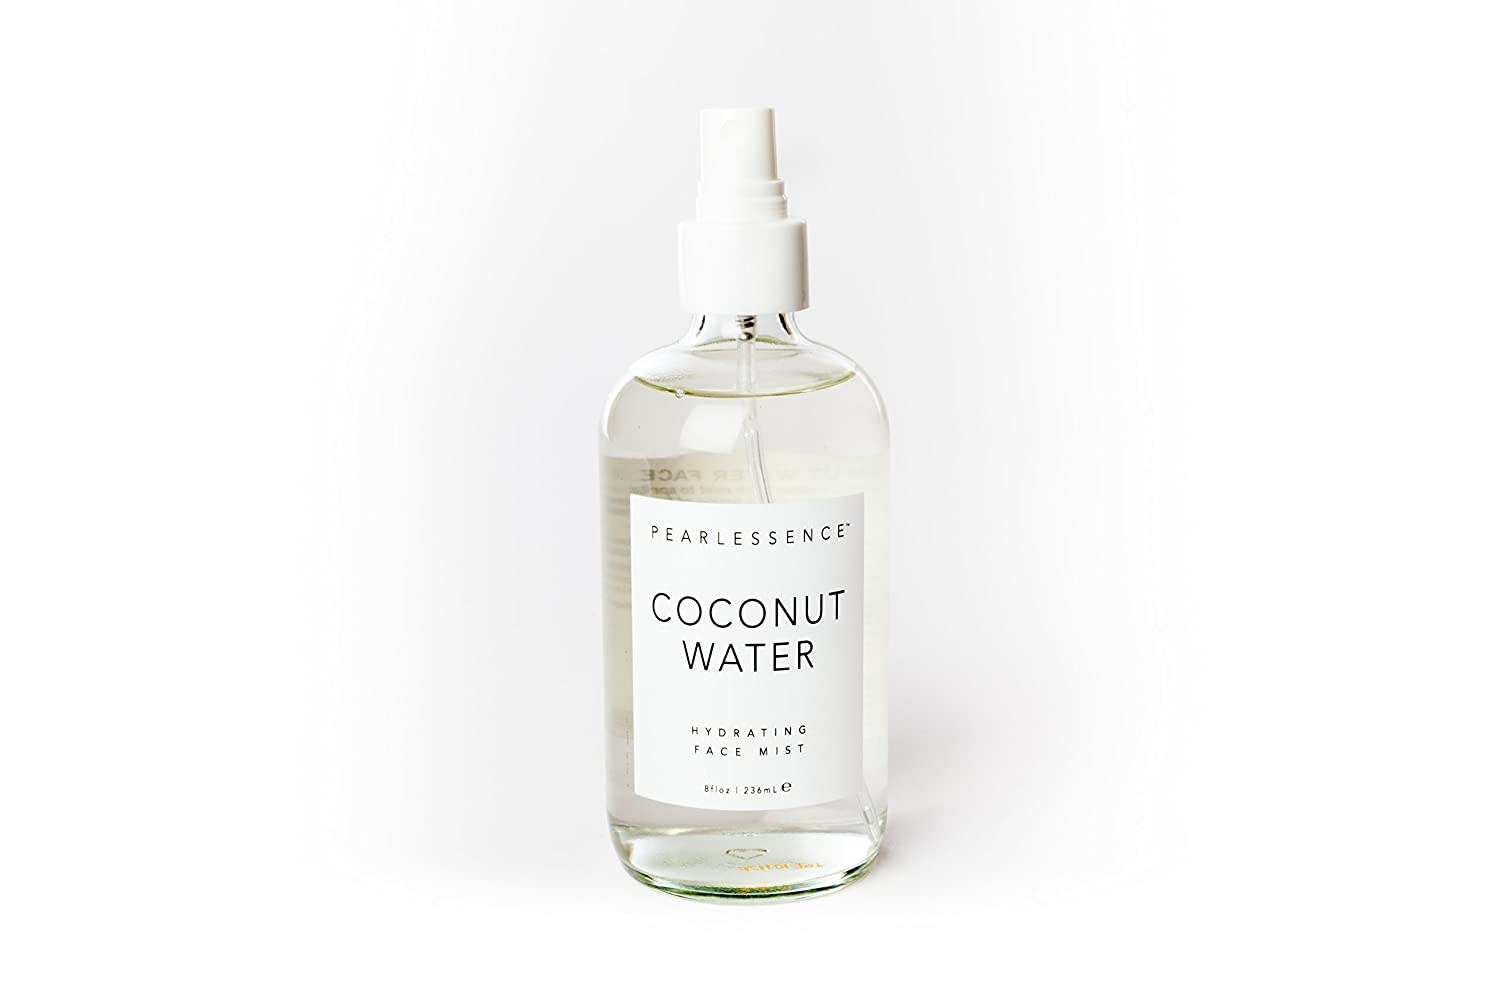 PearlEssence Coconut Water Hydrating Face Mist 8 ounces